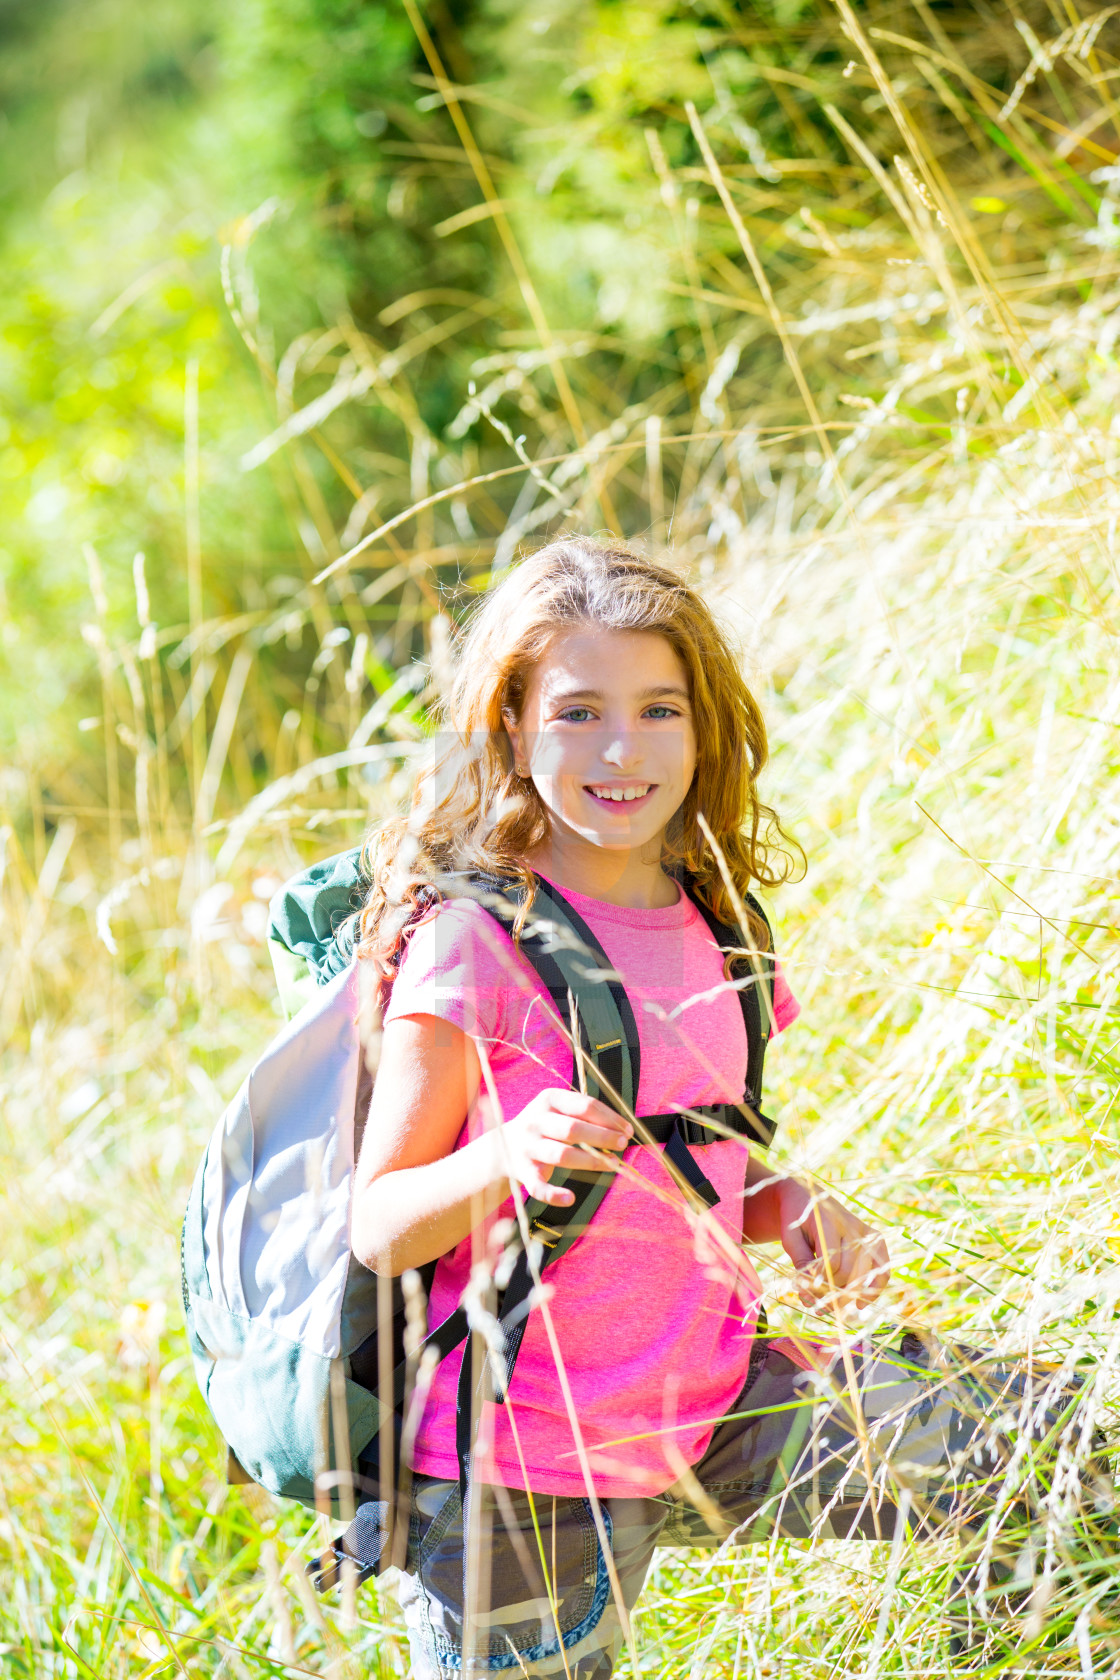 """""""Explorer kid girl walking with backpack in grass"""" stock image"""